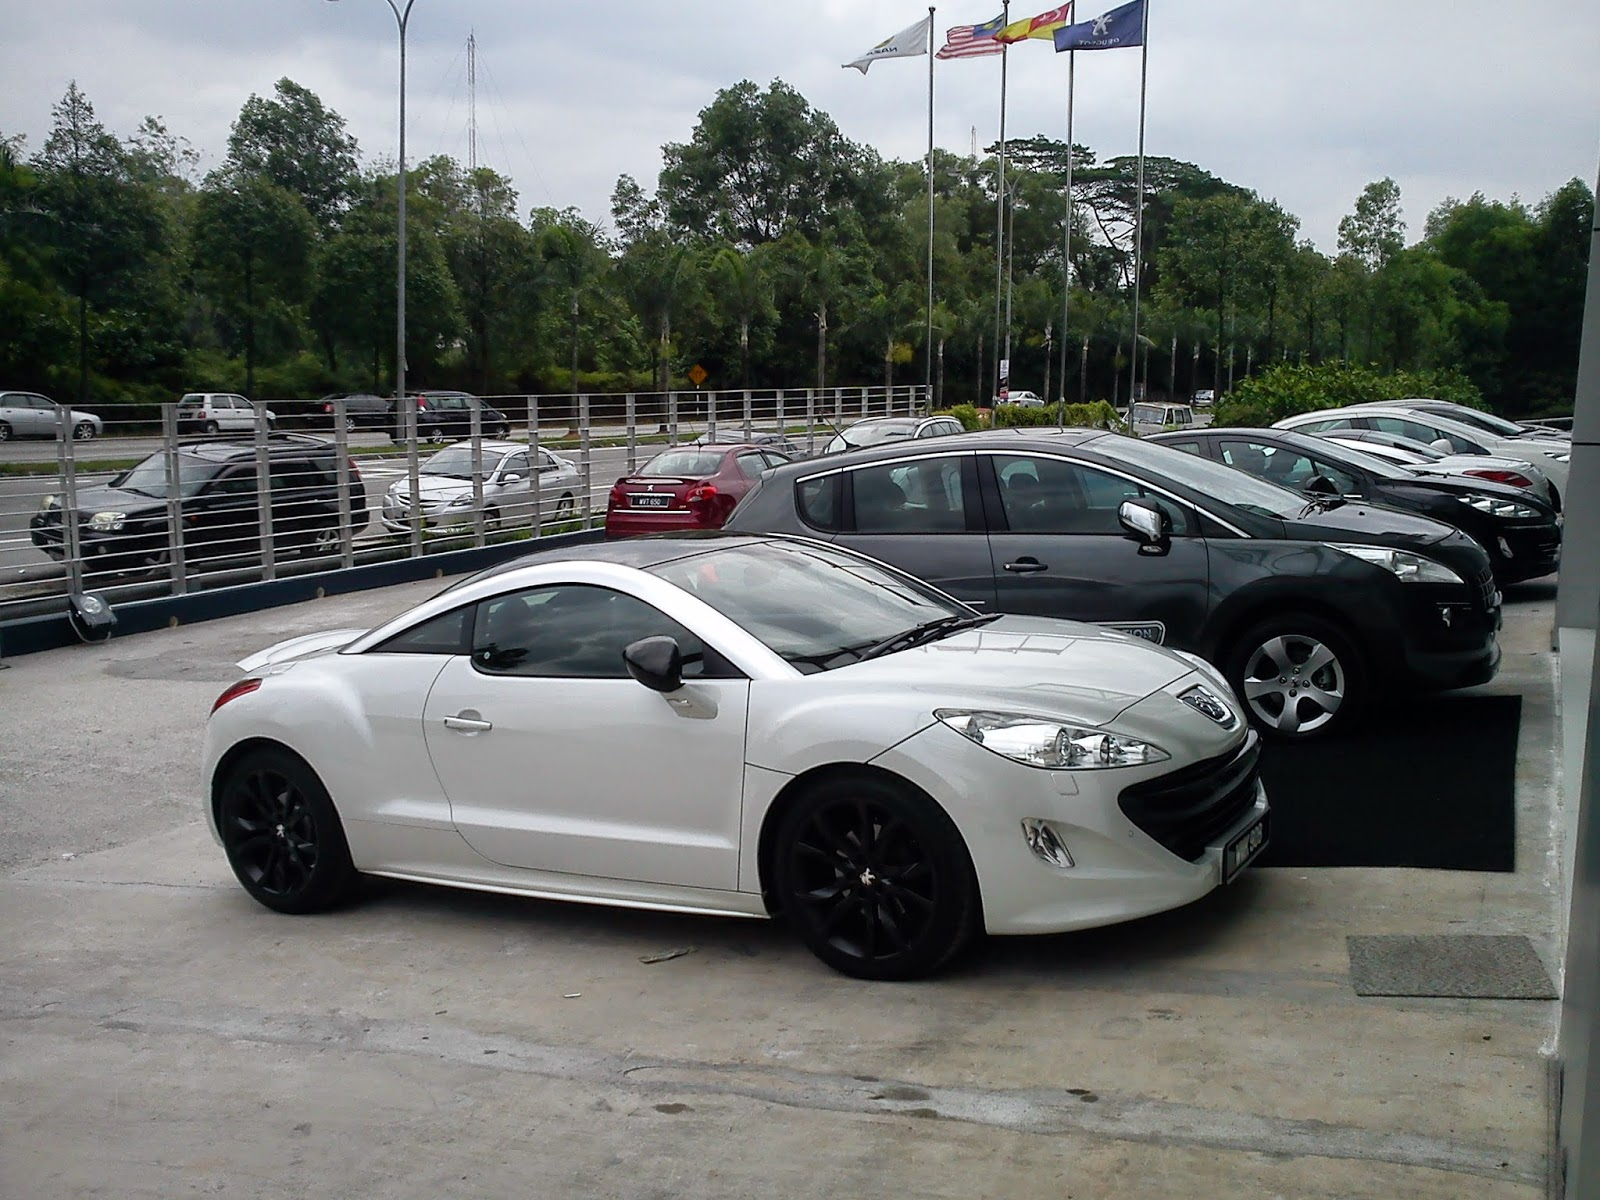 motoring-malaysia: peugeot rcz will have no successor. a pity.